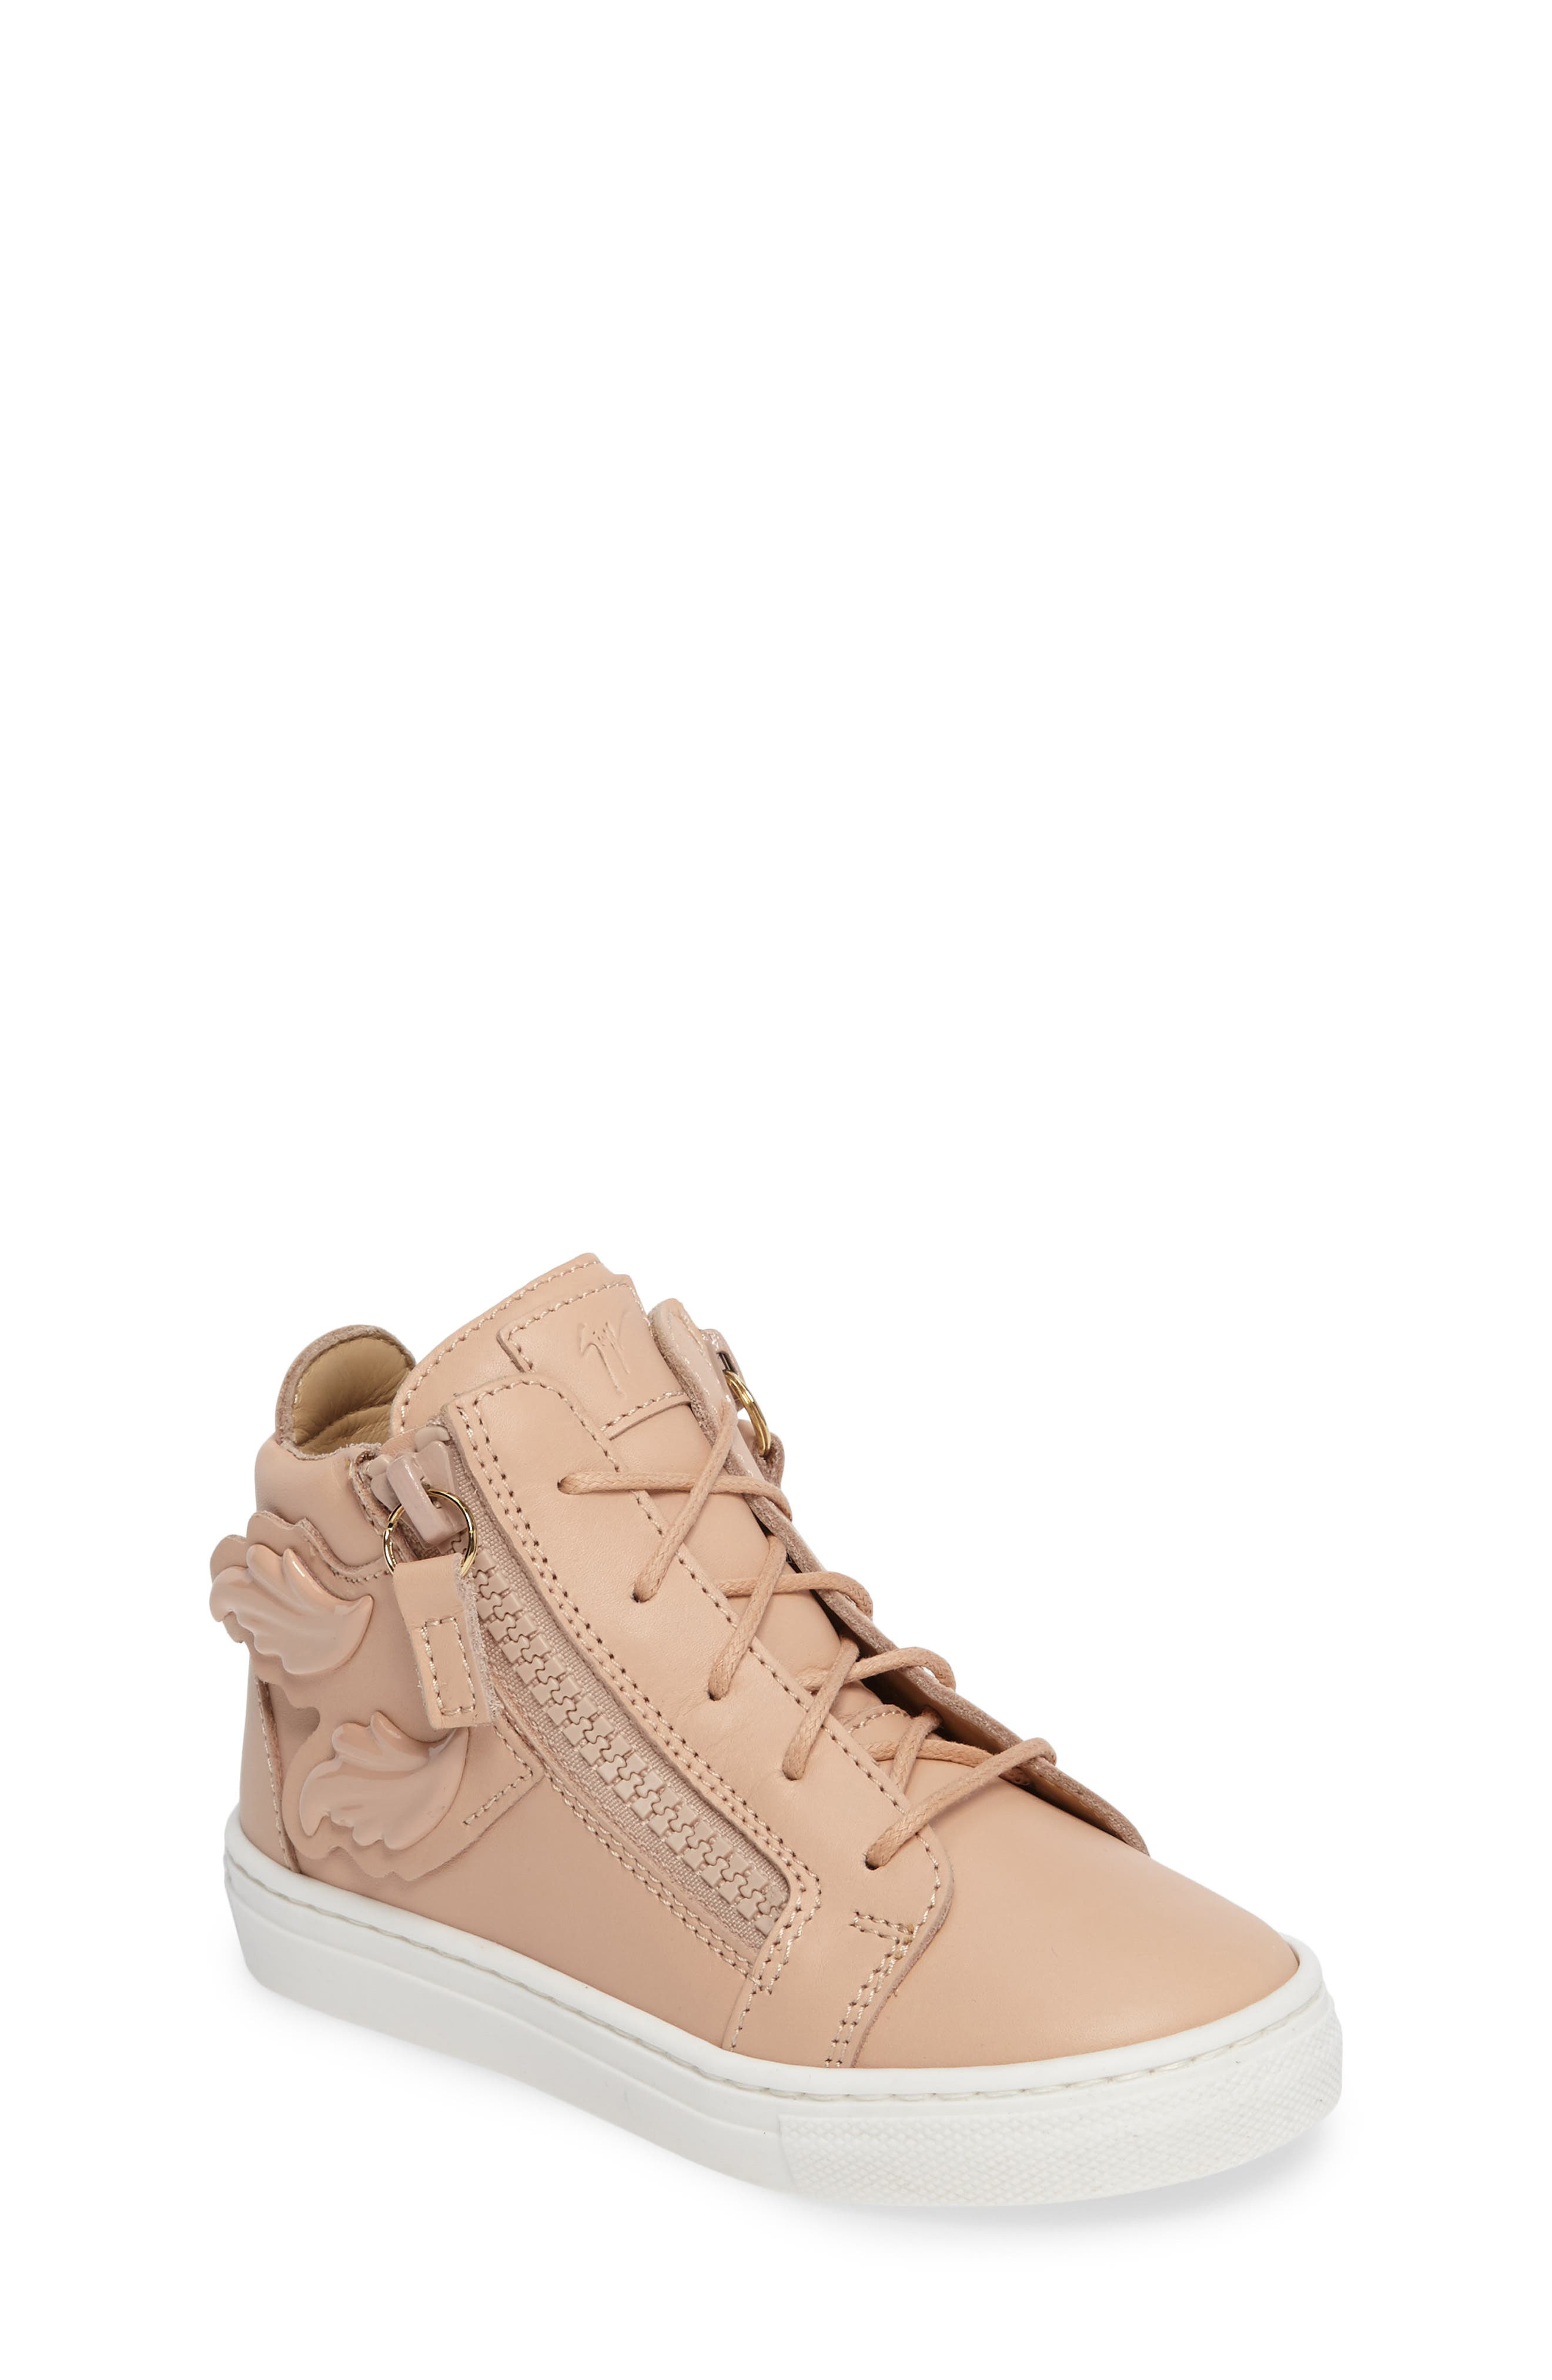 Foglia Embellished Zip Sneaker,                             Main thumbnail 1, color,                             Shell Leather